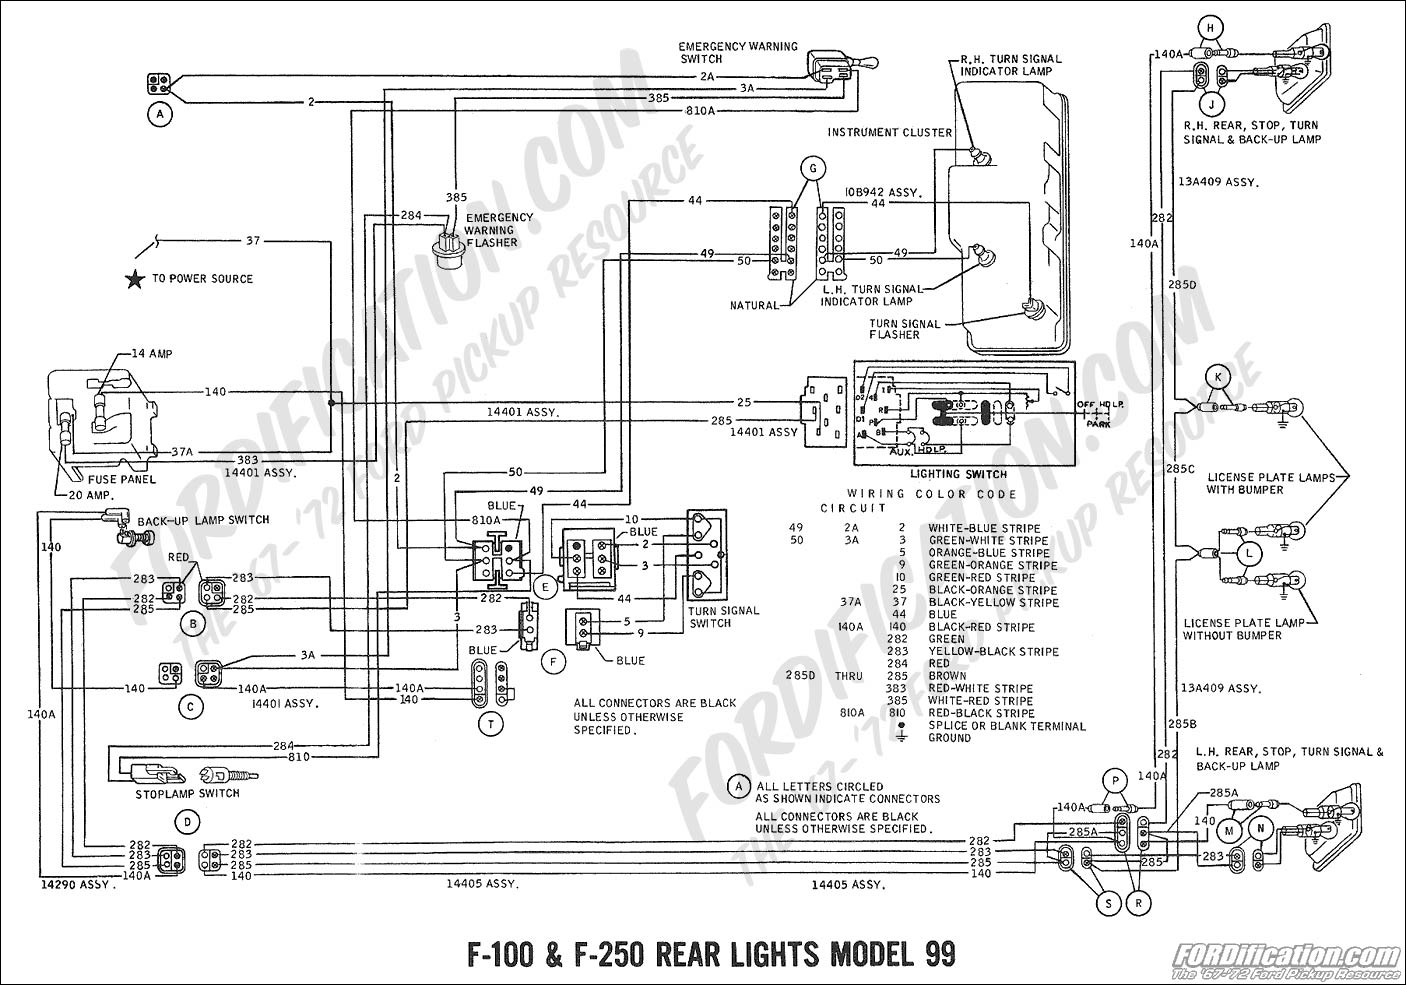 1969 ford f 350 wiring schematic 1969 ford f250 wiring schematic